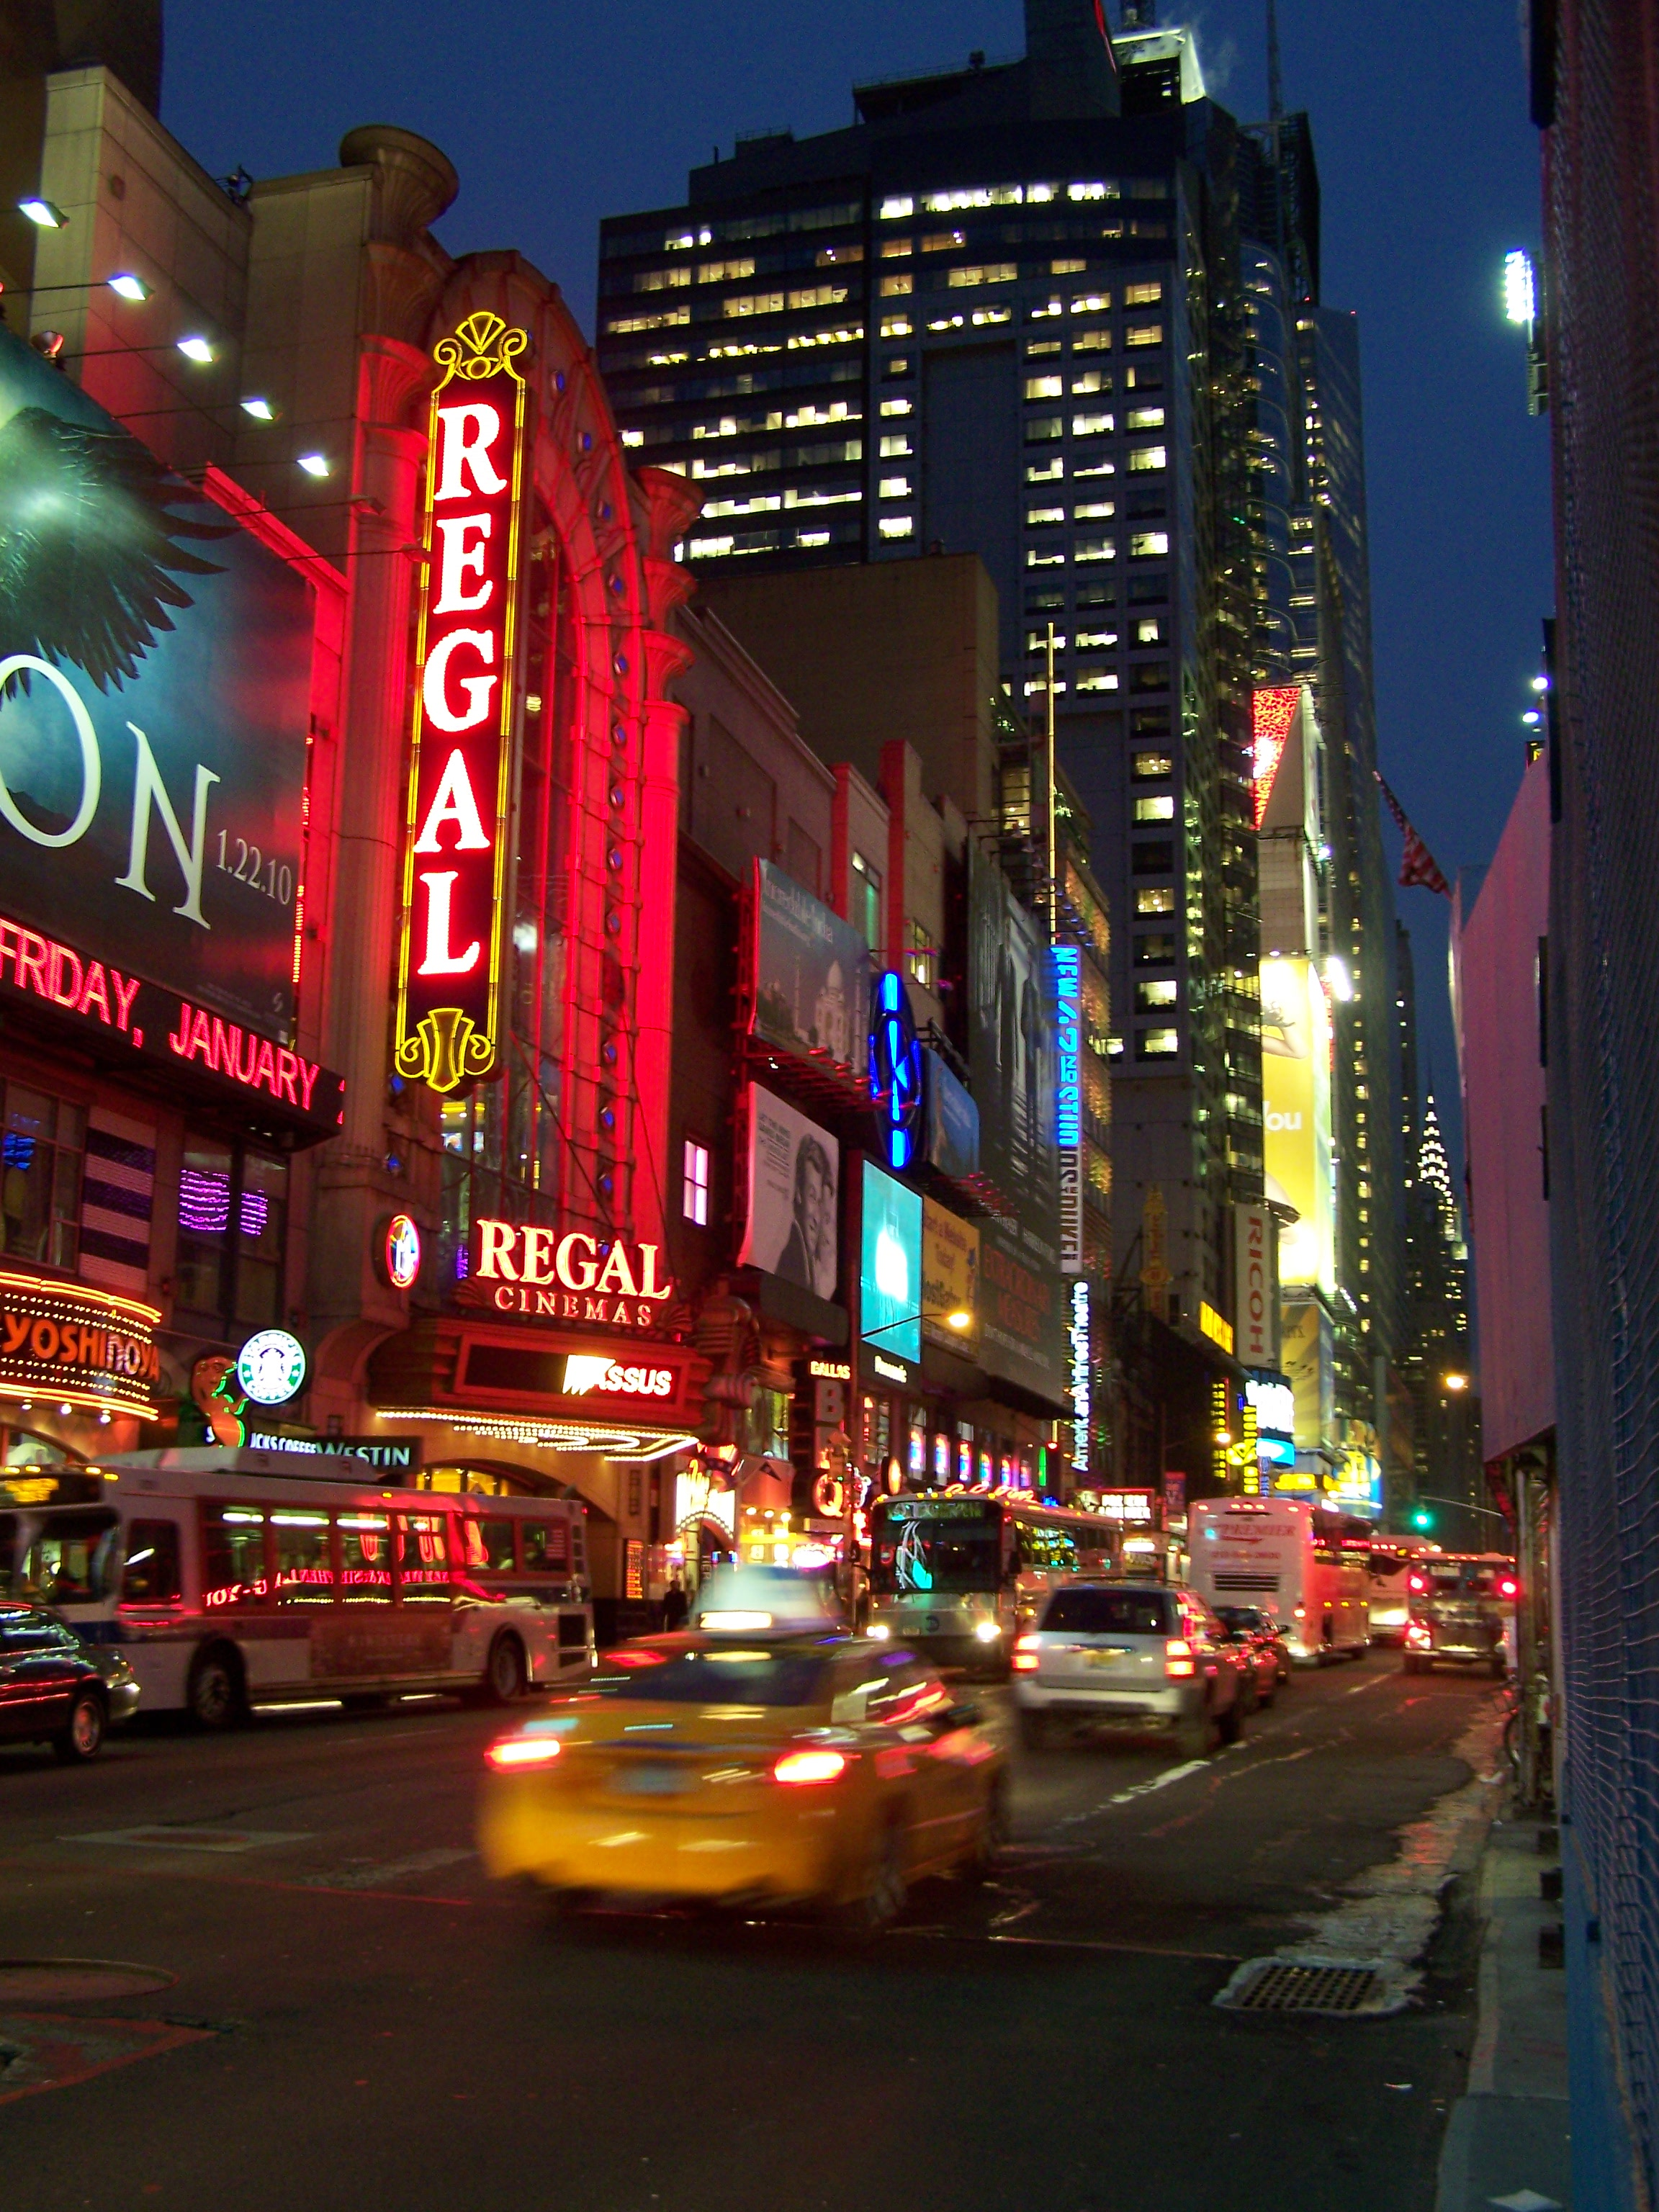 Reviews on 42nd Street Restaurants in New York, NY - West Bank Cafe, The Capital Grille, Bea, Burger & Lobster, Carmine's Italian Restaurant - Times Square, Aureole, Trattoria Casa Di Isacco, Ocean Prime, Legasea Seafood Brasserie, Dafni Greek.